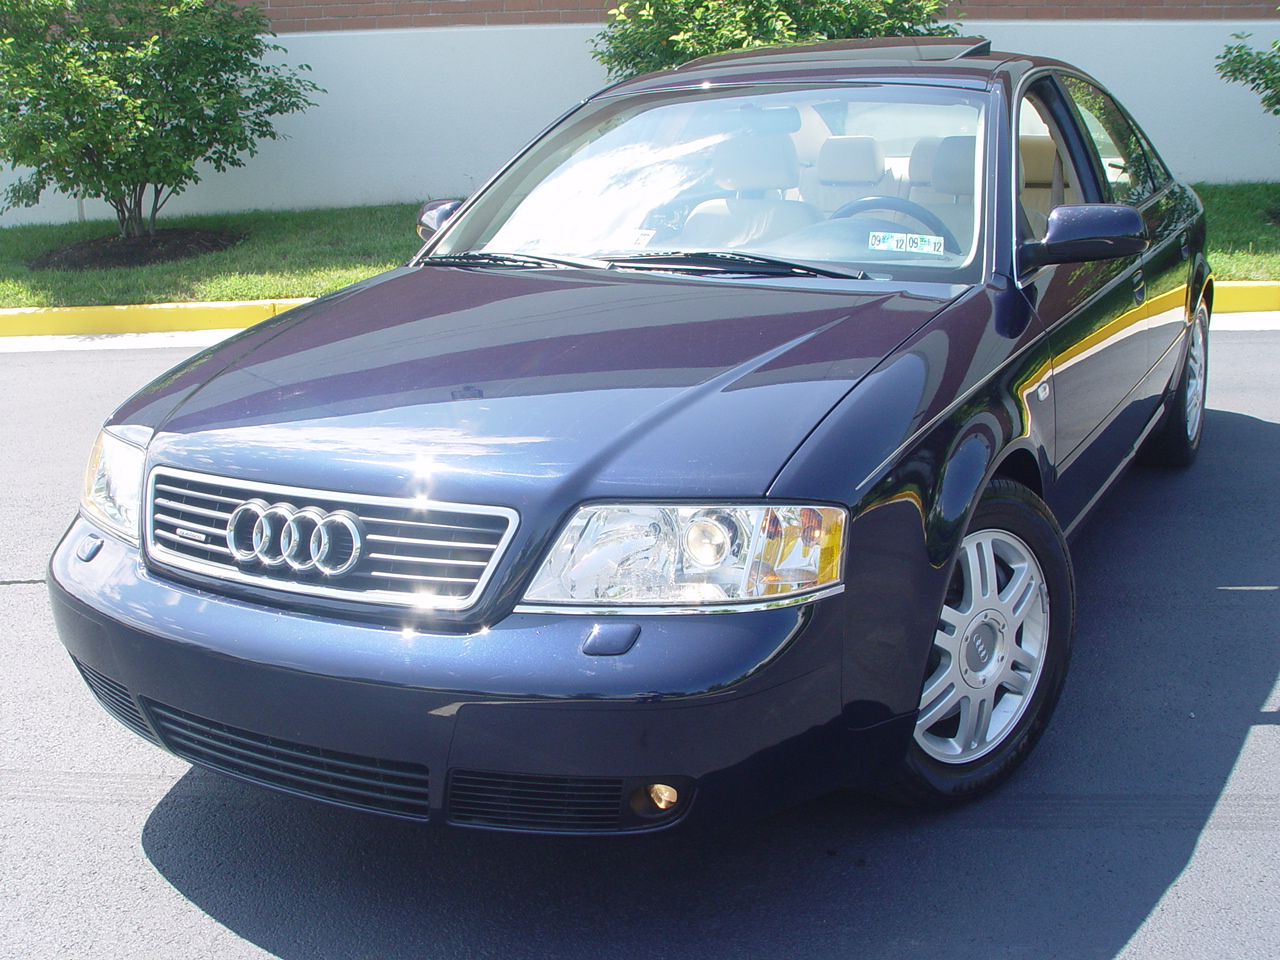 2001 audi a6 exterior pictures cargurus. Black Bedroom Furniture Sets. Home Design Ideas